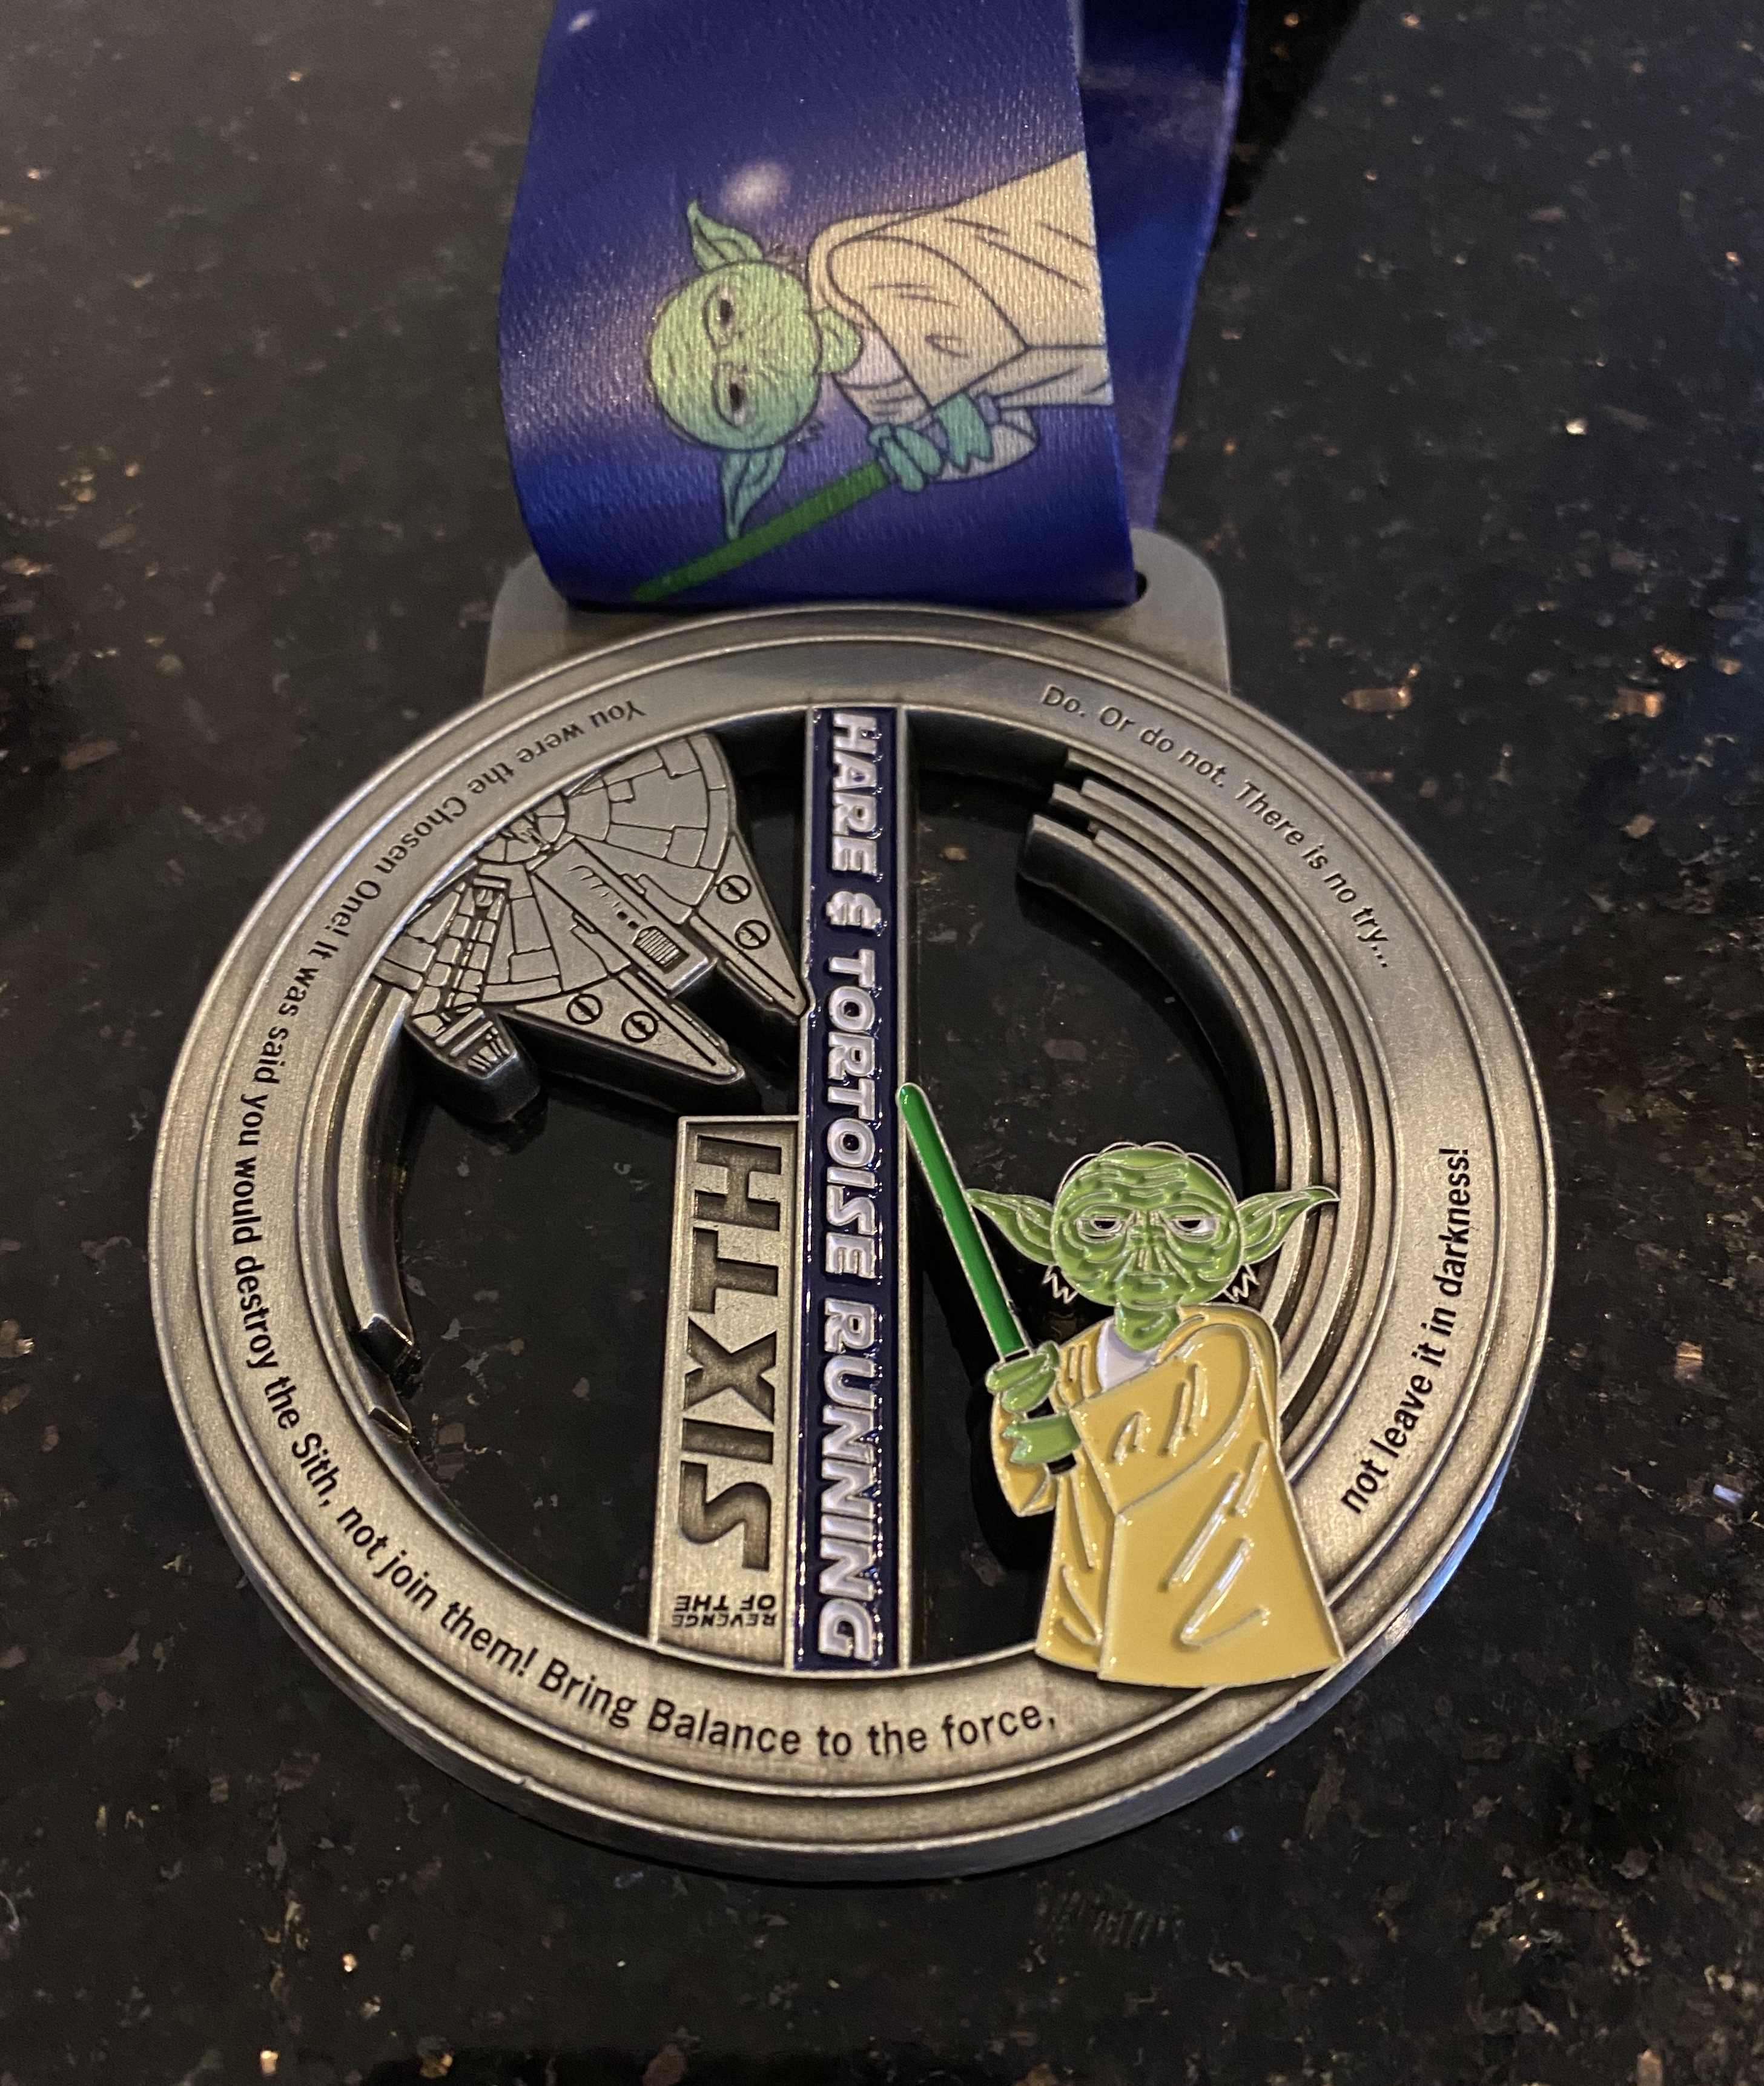 Revenge of the 6th Medal - VIRTUAL EVENT